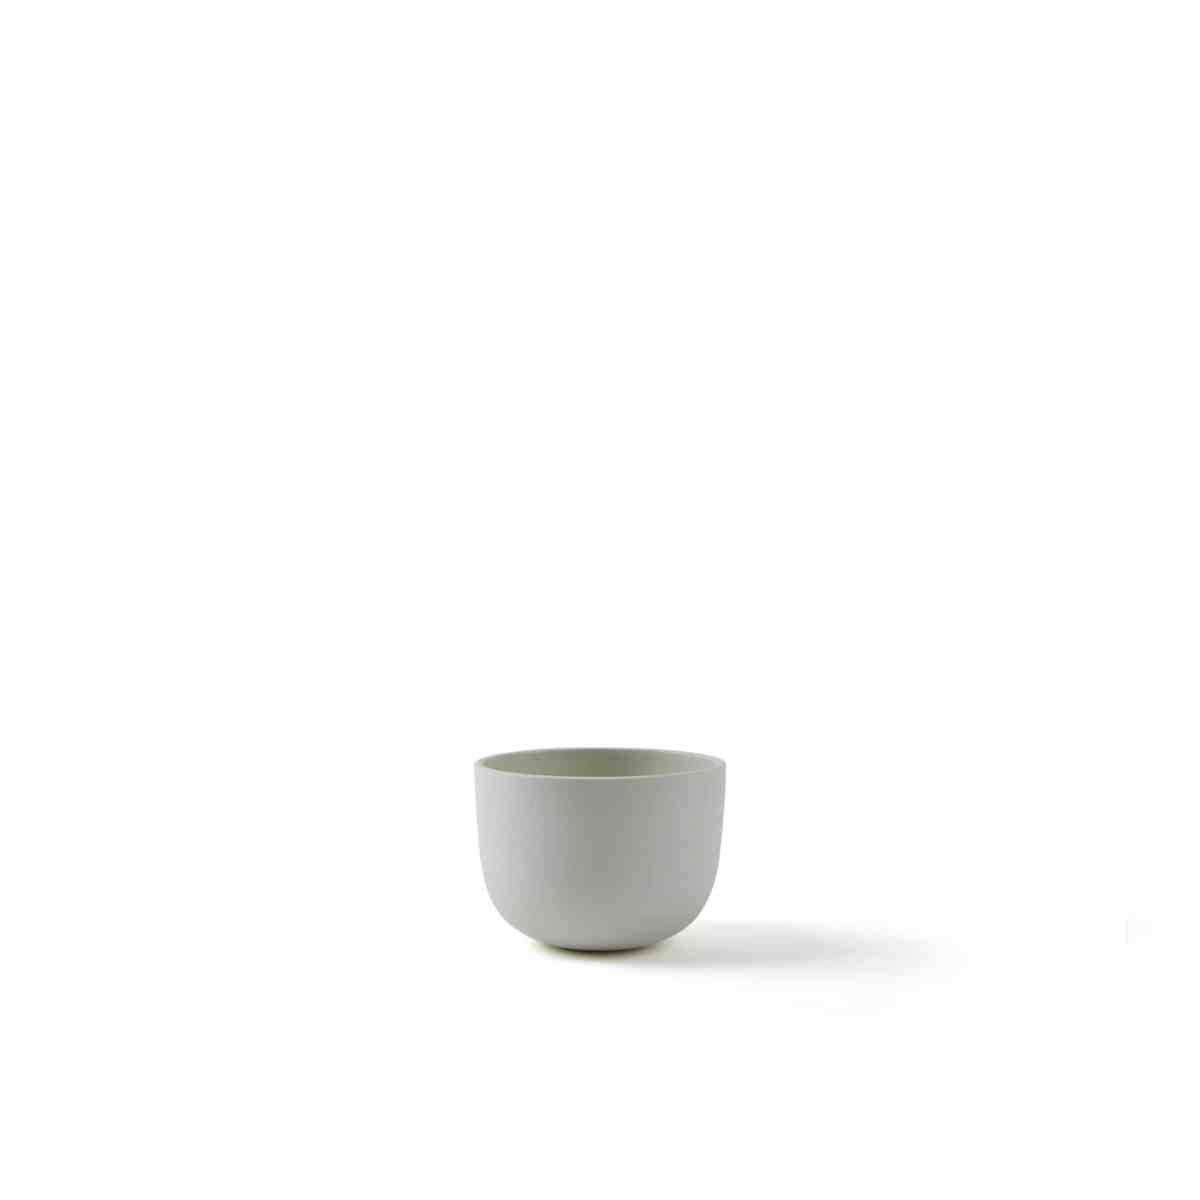 luke-eastop-celadon-crucible-small-another-country-001